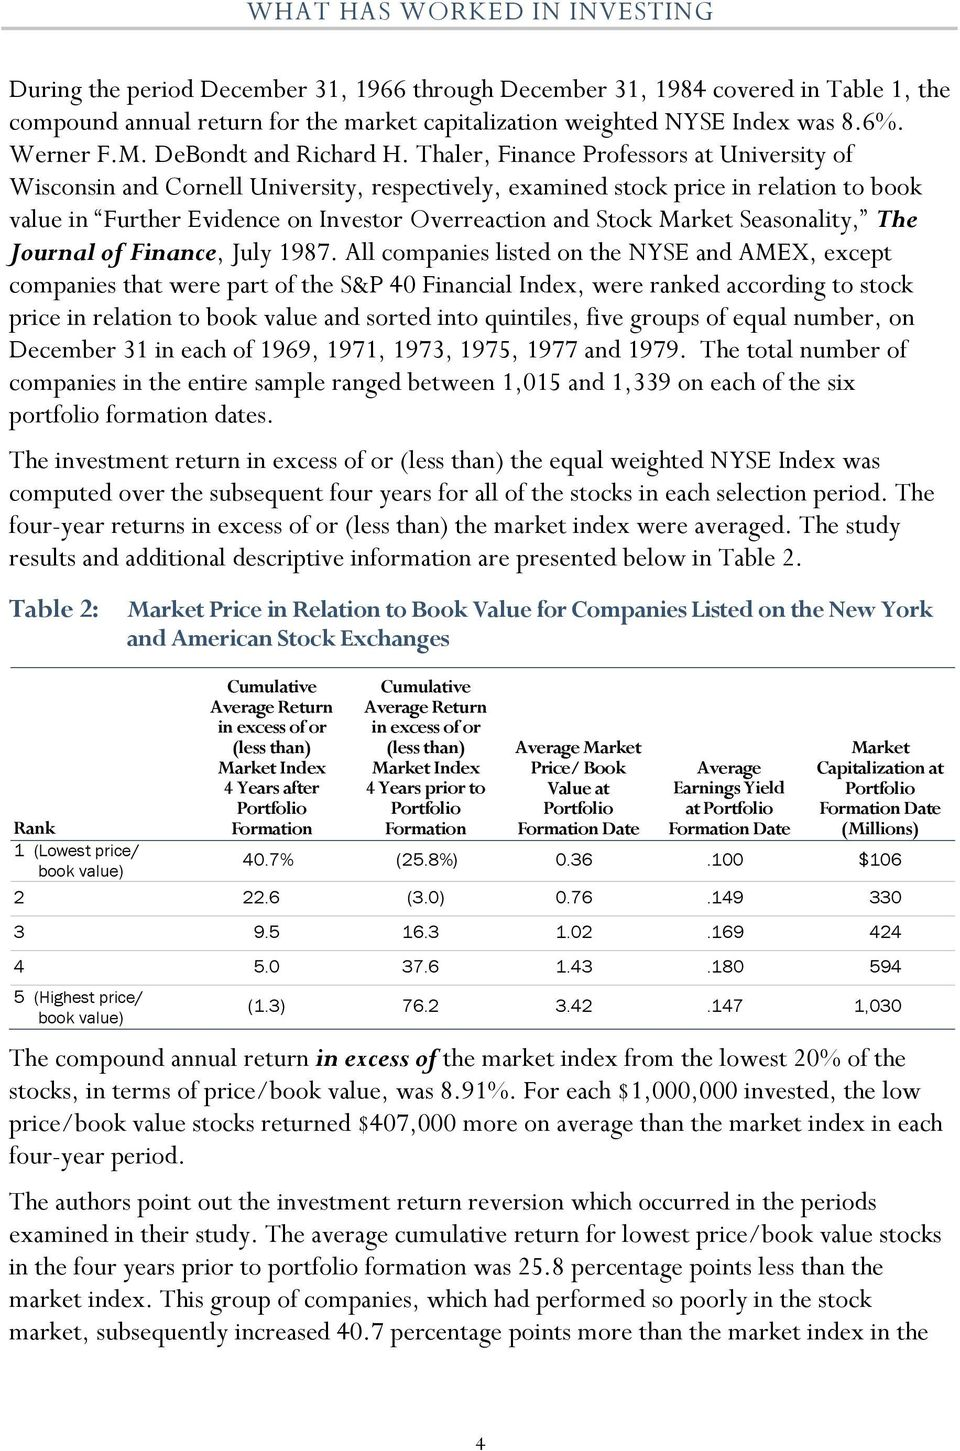 Thaler, Finance Professors at University of Wisconsin and Cornell University, respectively, examined stock price in relation to book value in Further Evidence on Investor Overreaction and Stock